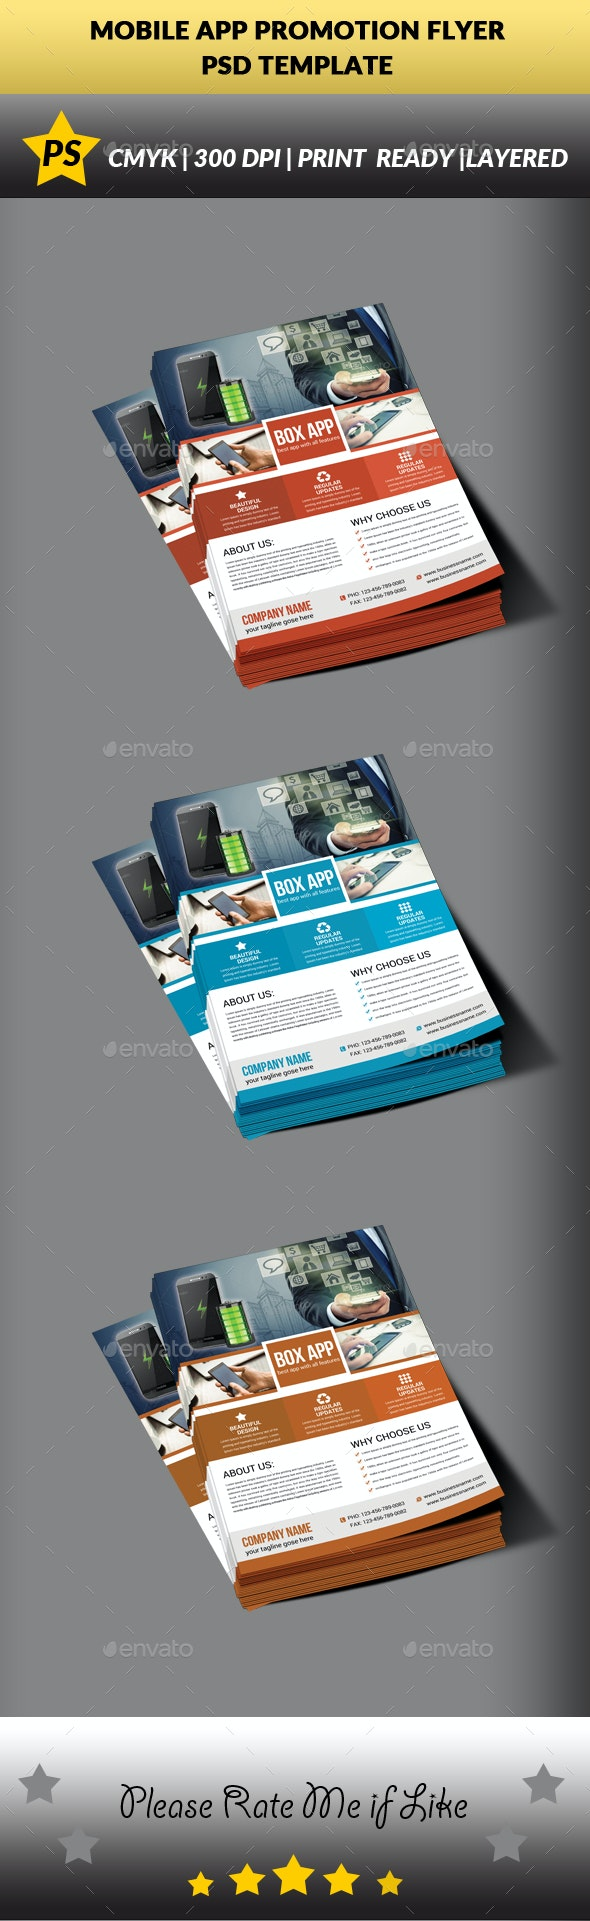 Mobile App Promotion Flyer Template - Corporate Flyers